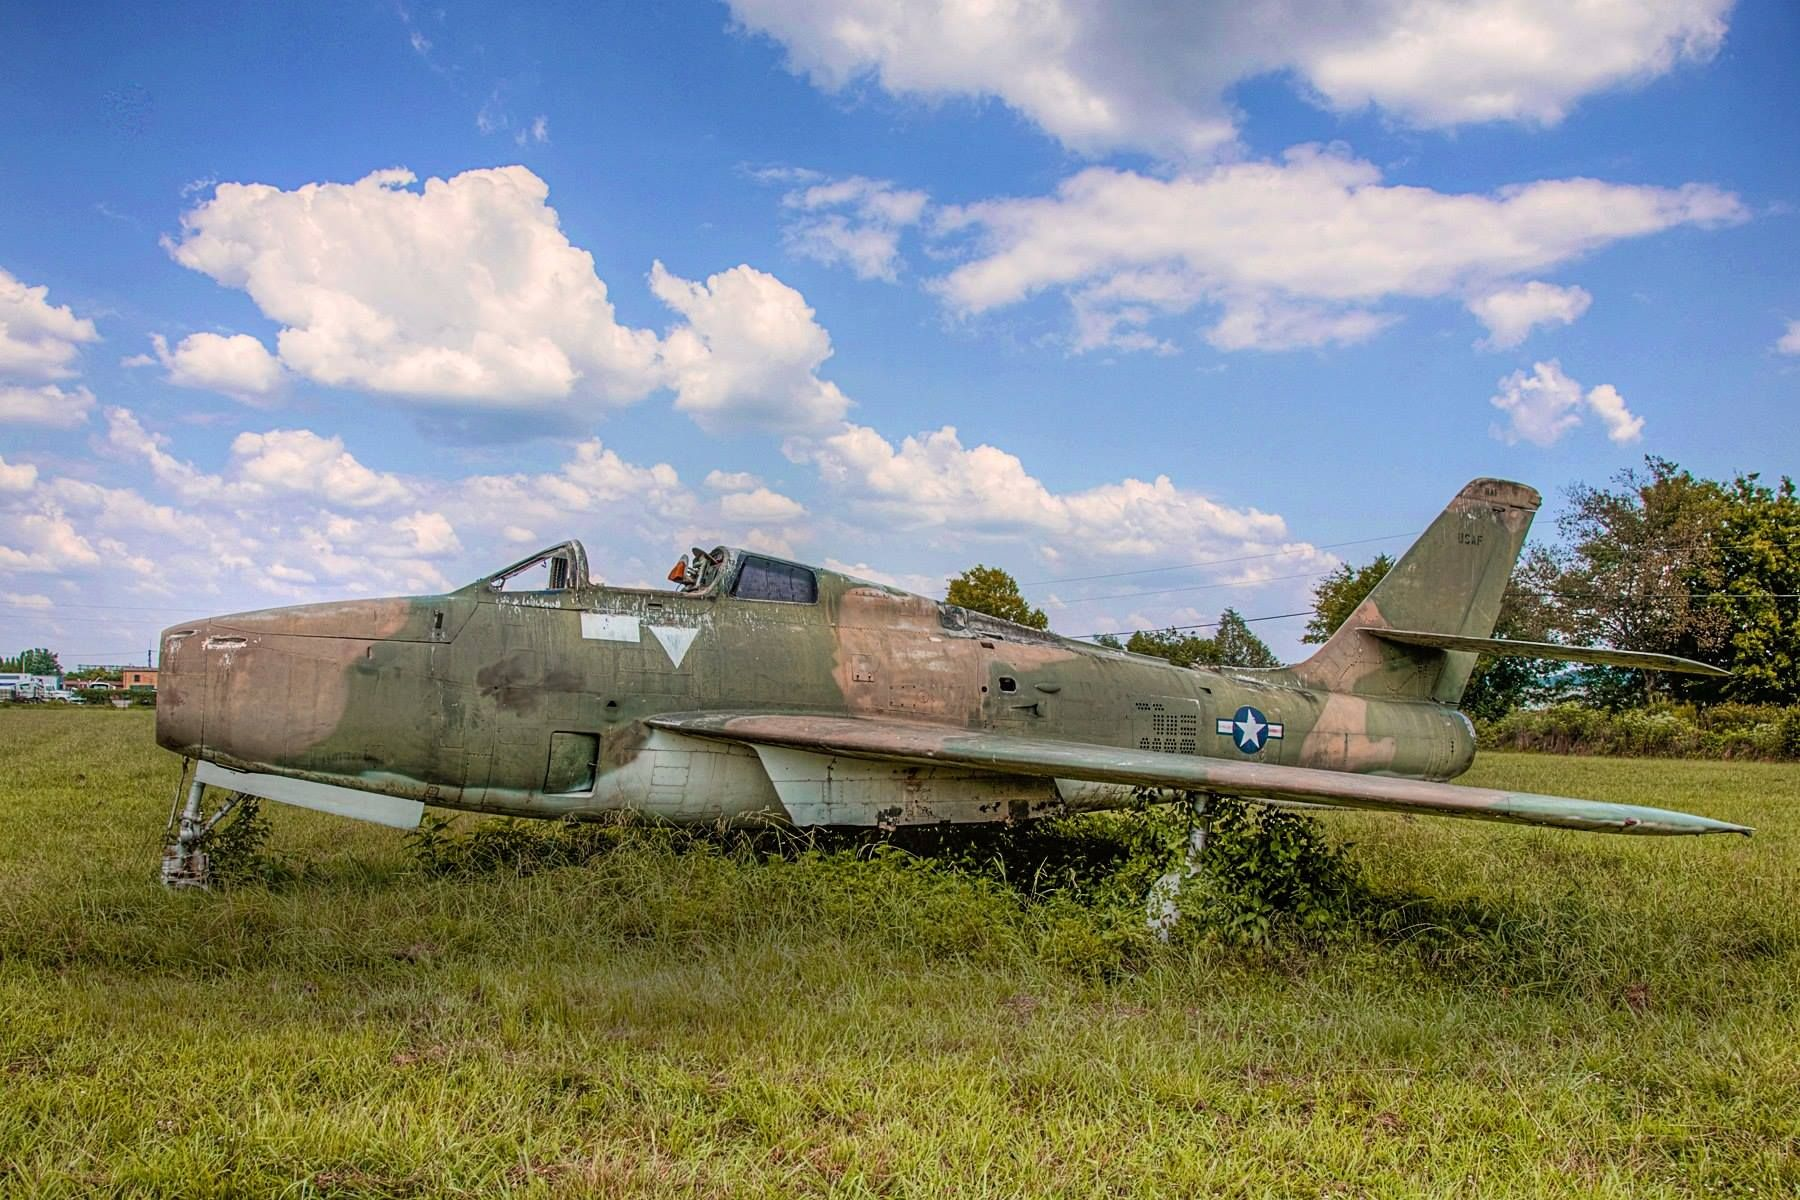 F84F when we first found it in a field and now as it is